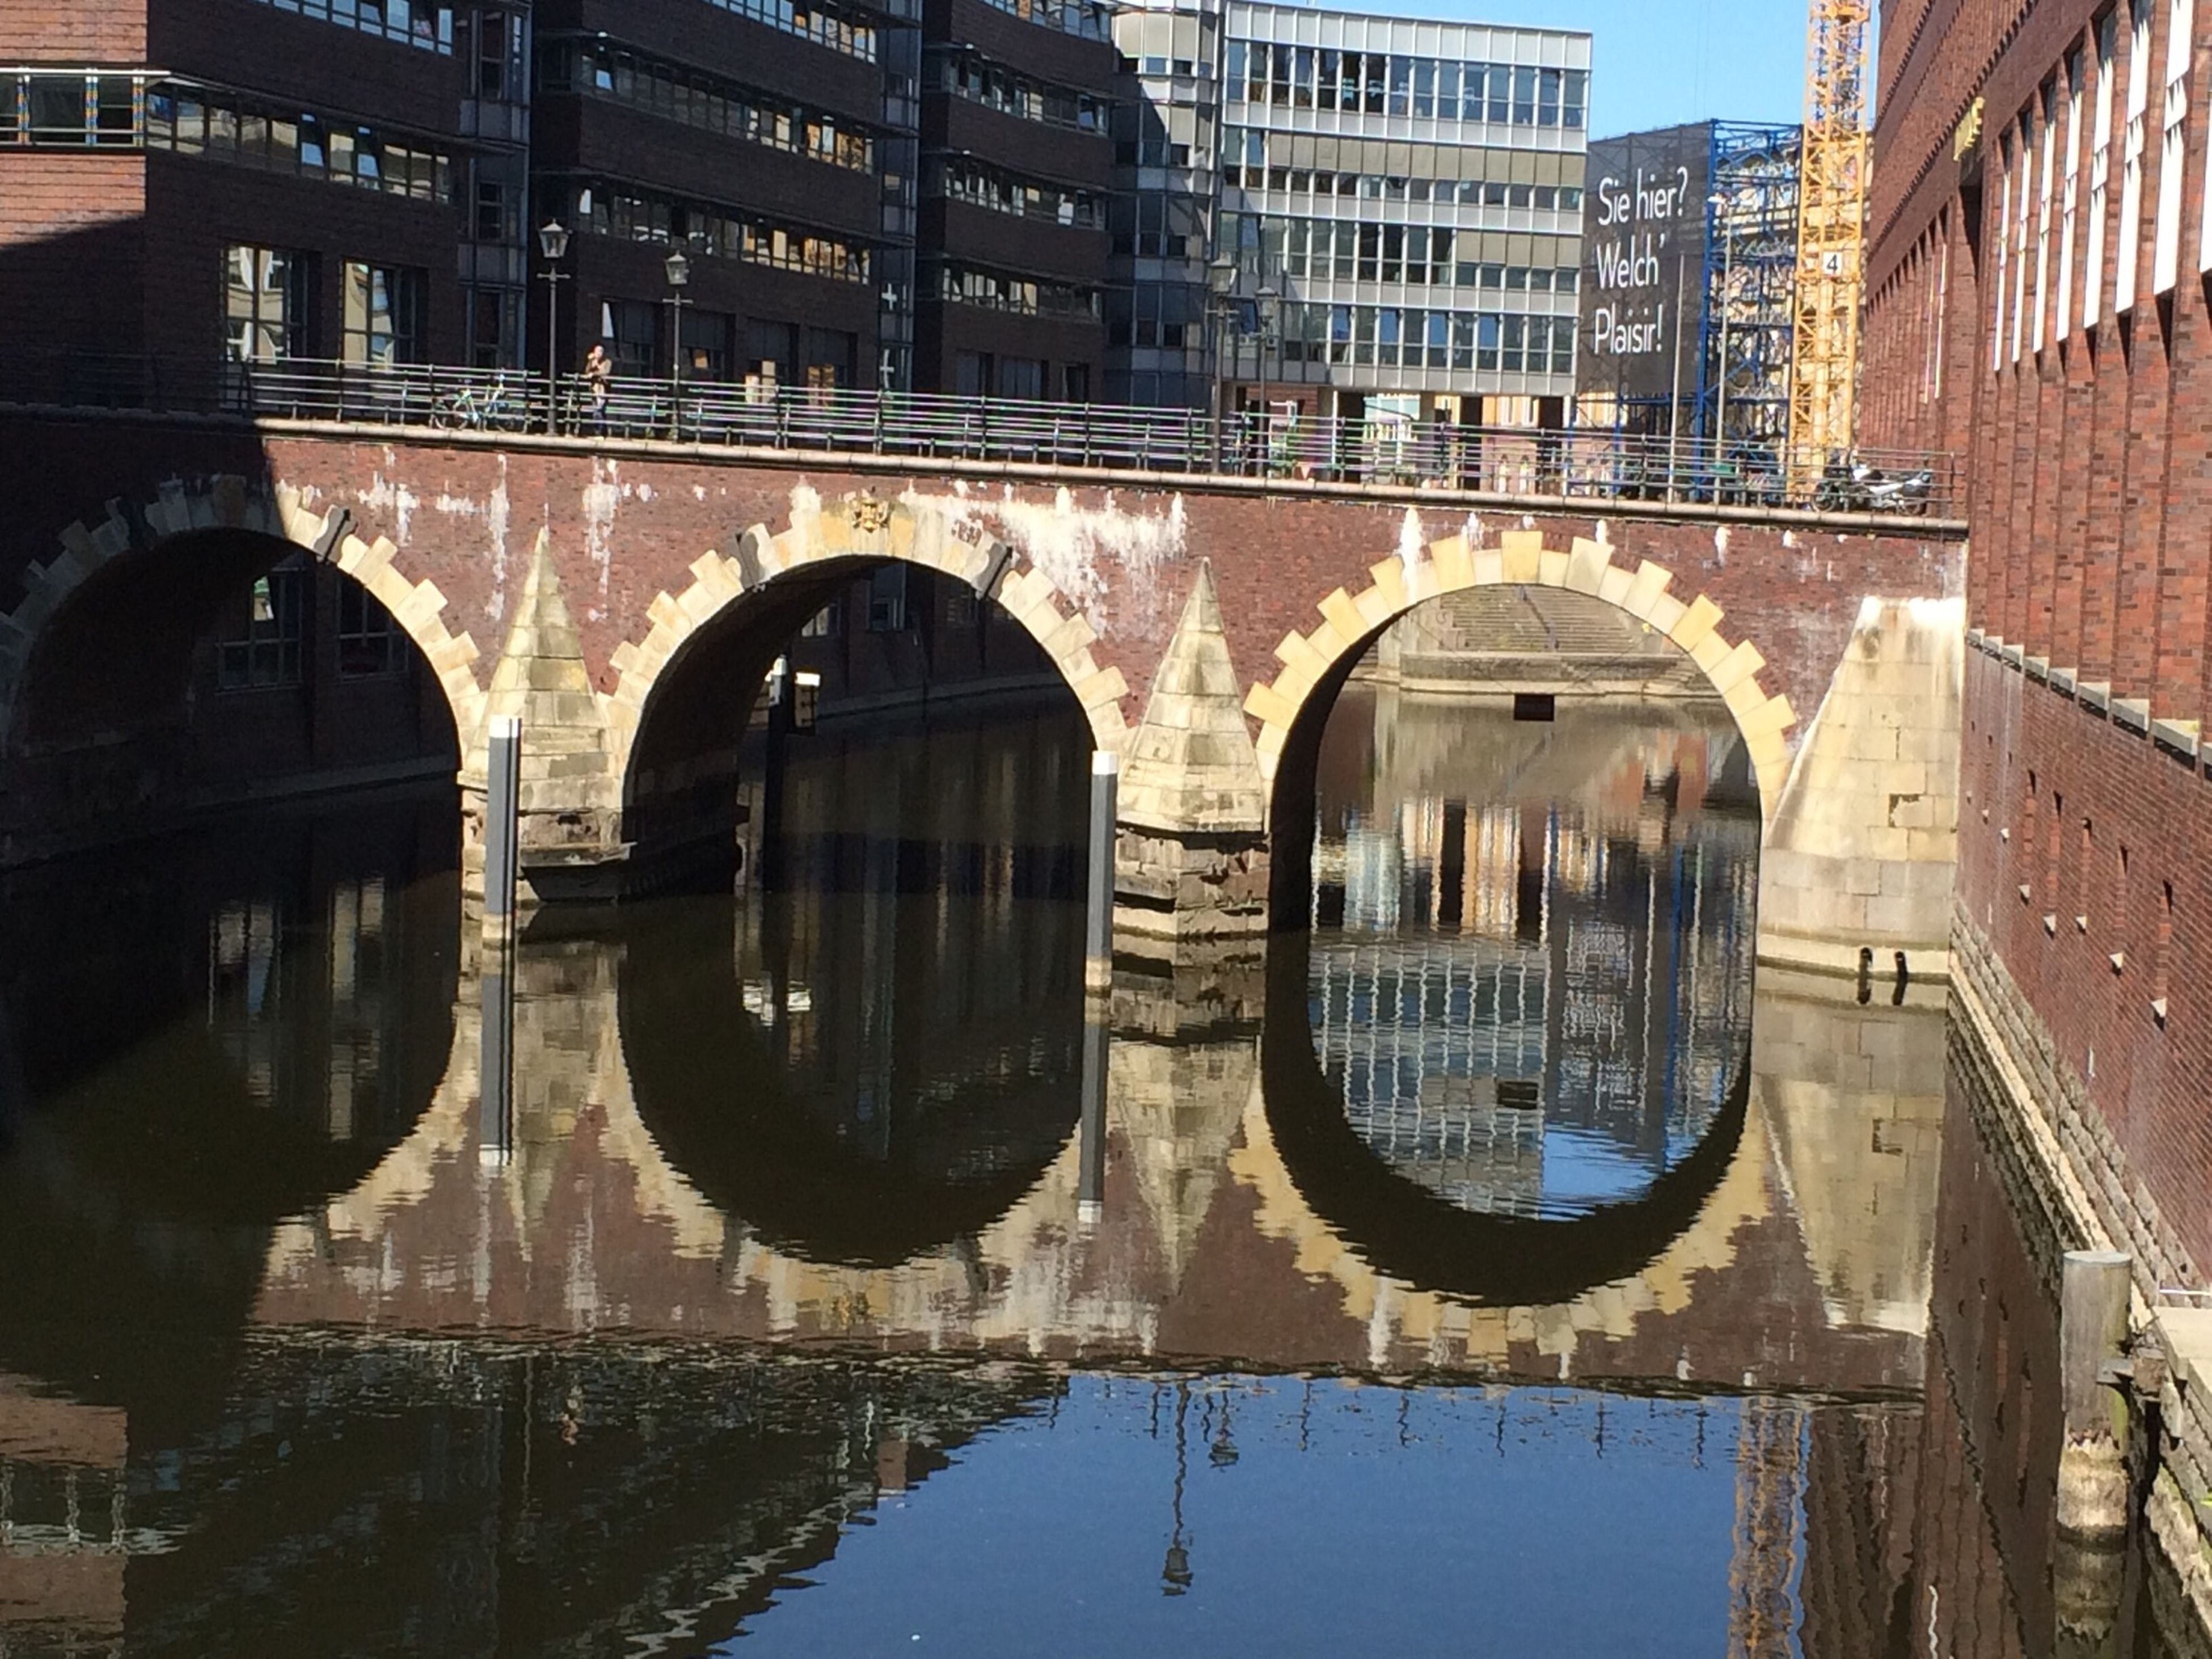 architecture, built structure, building exterior, reflection, water, canal, building, arch, waterfront, city, connection, residential building, residential structure, window, outdoors, bridge - man made structure, river, no people, transportation, standing water